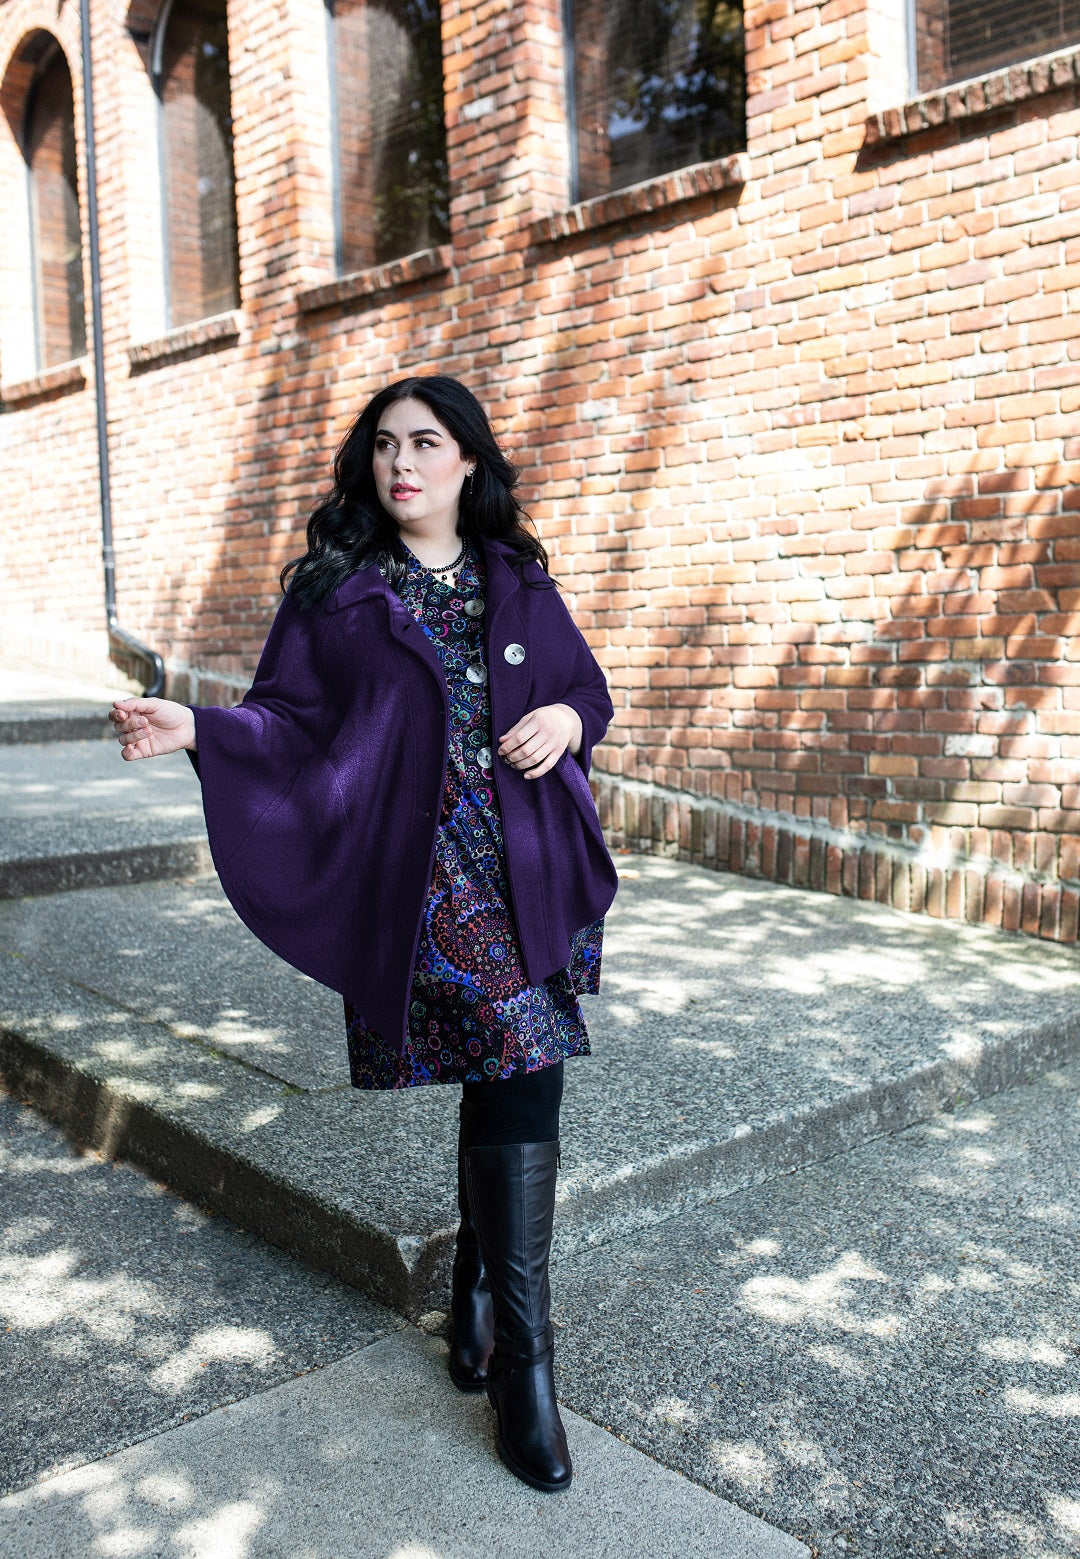 Veronica Bell models Diane Kennedy's new A Cappella Cape